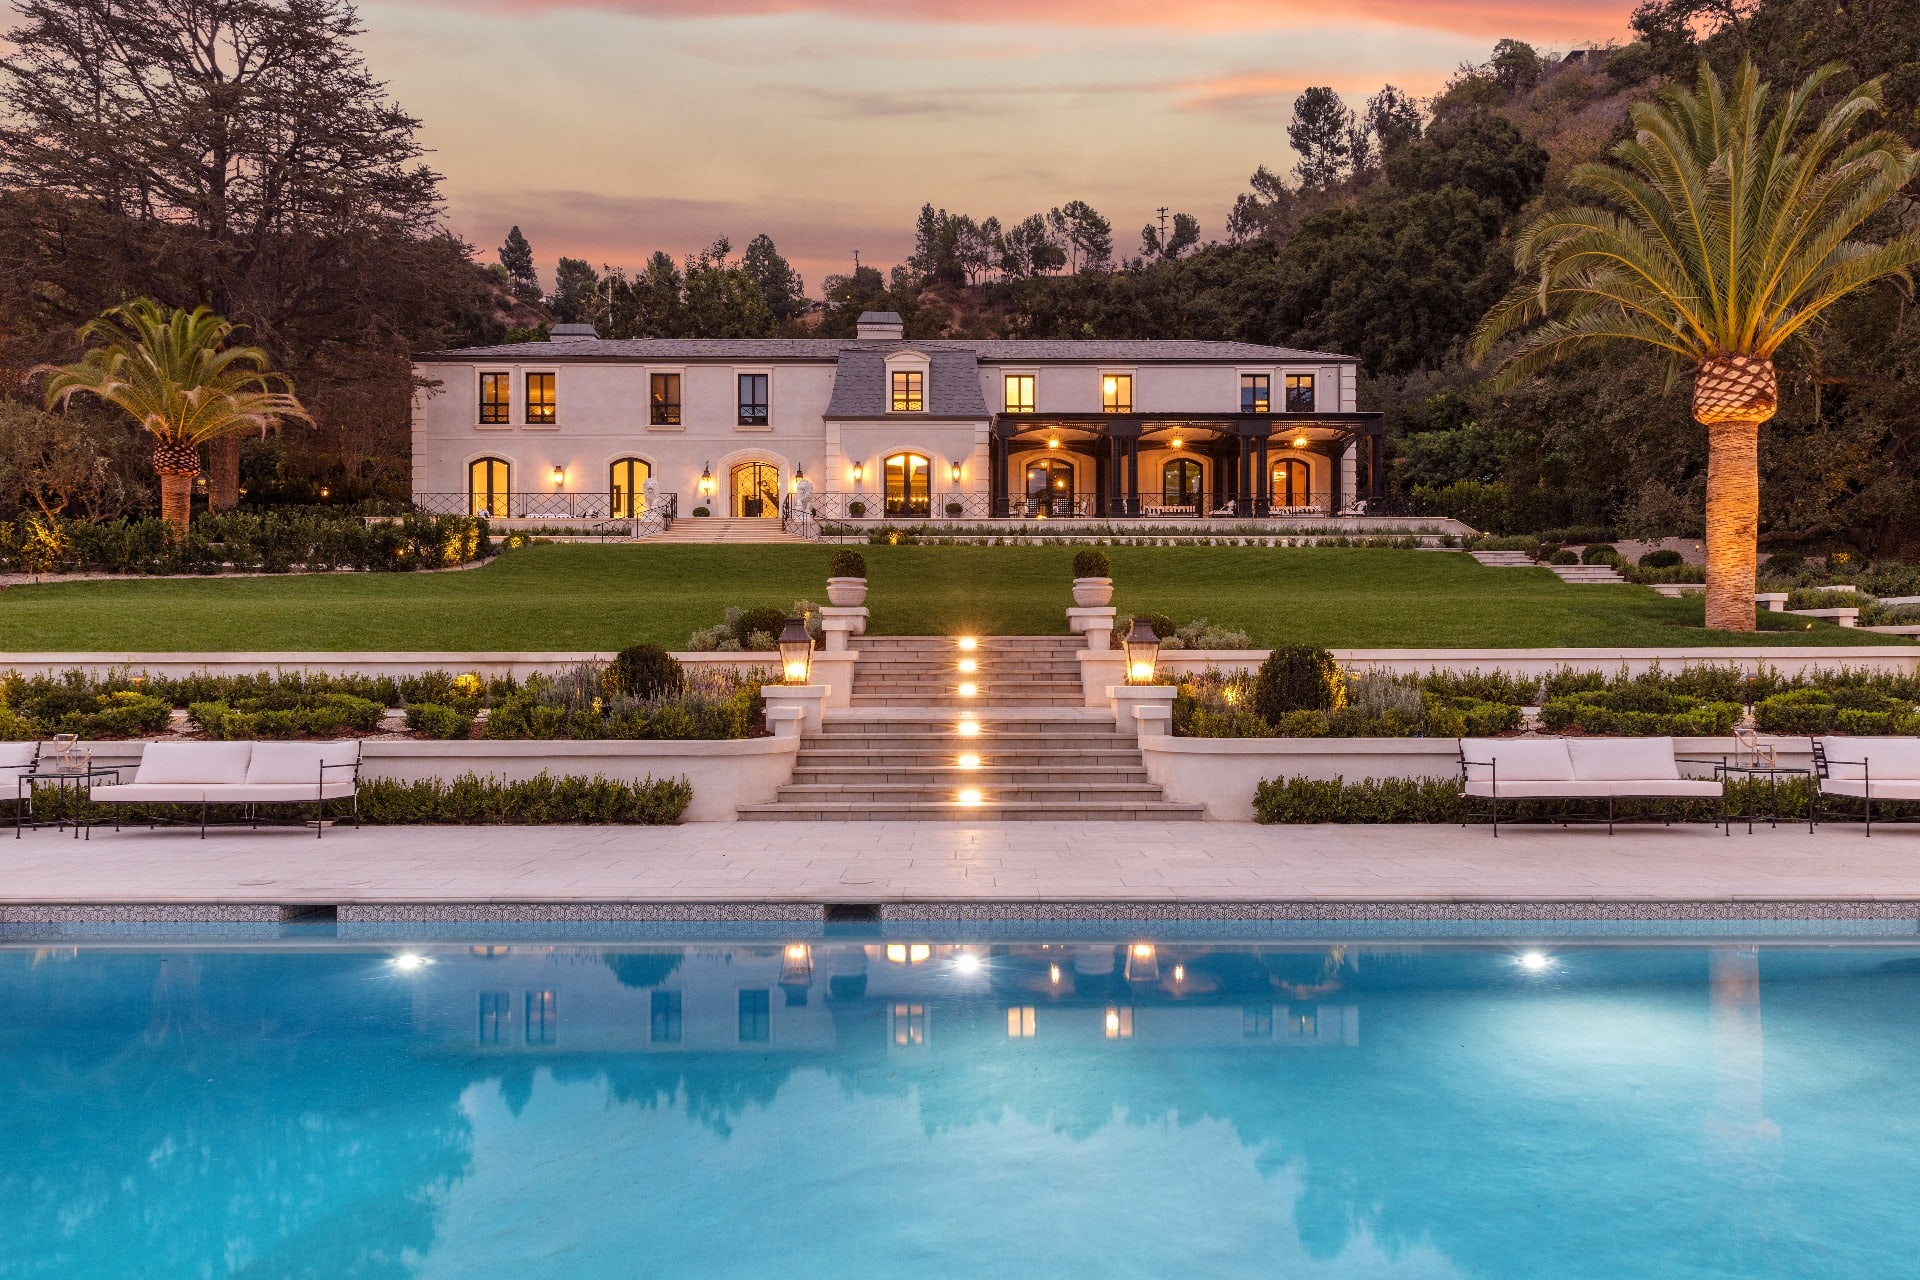 Best Kitchen Gallery: Beverly Hills Real Estate And Homes For Sale Christie's of Beverly Hills California Homes on rachelxblog.com